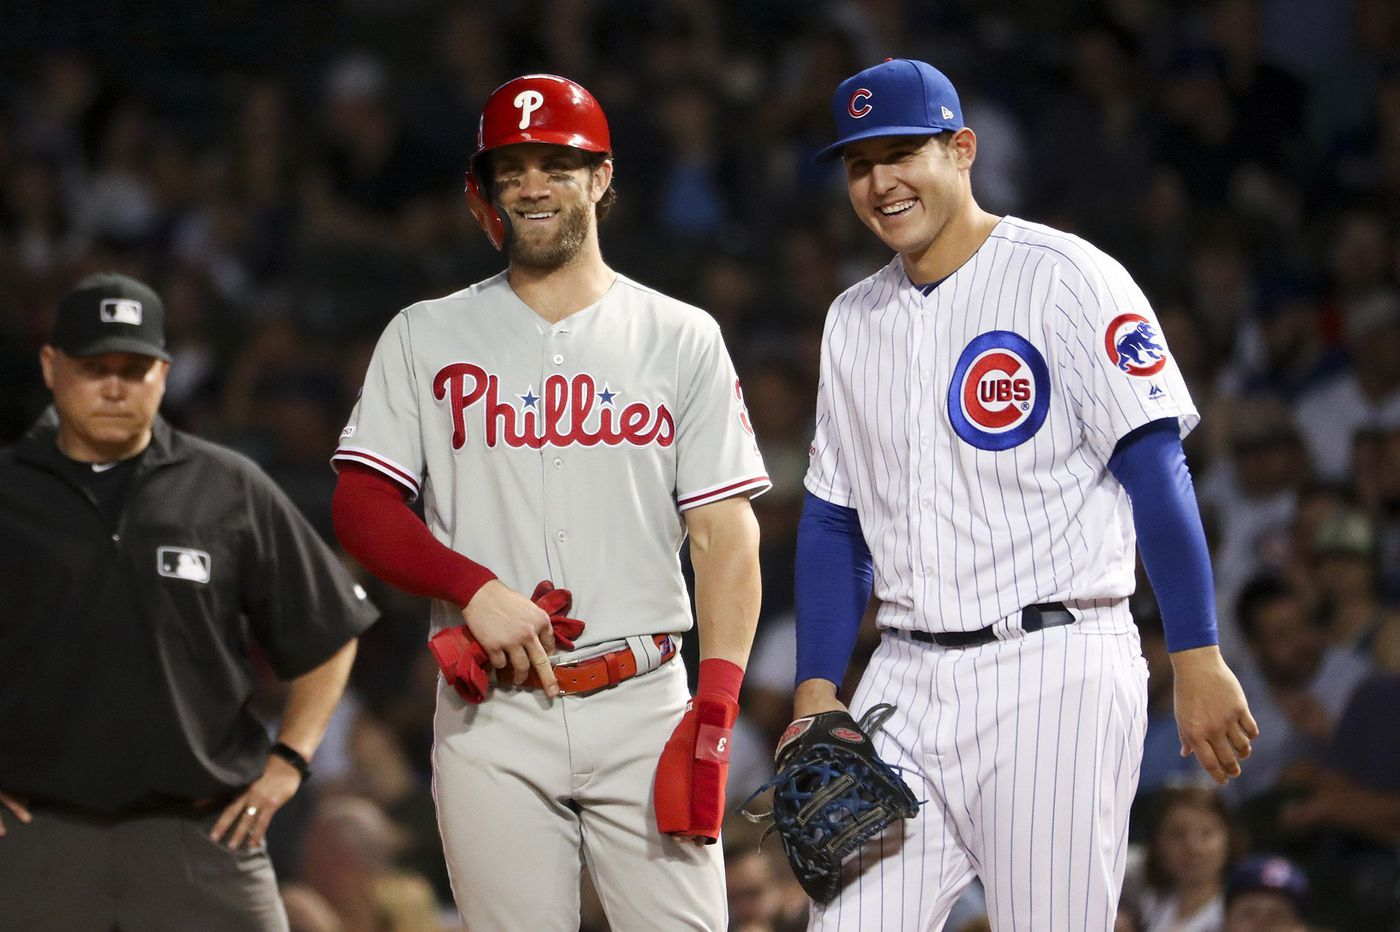 Phillies 9, Cubs 7 - as it happened